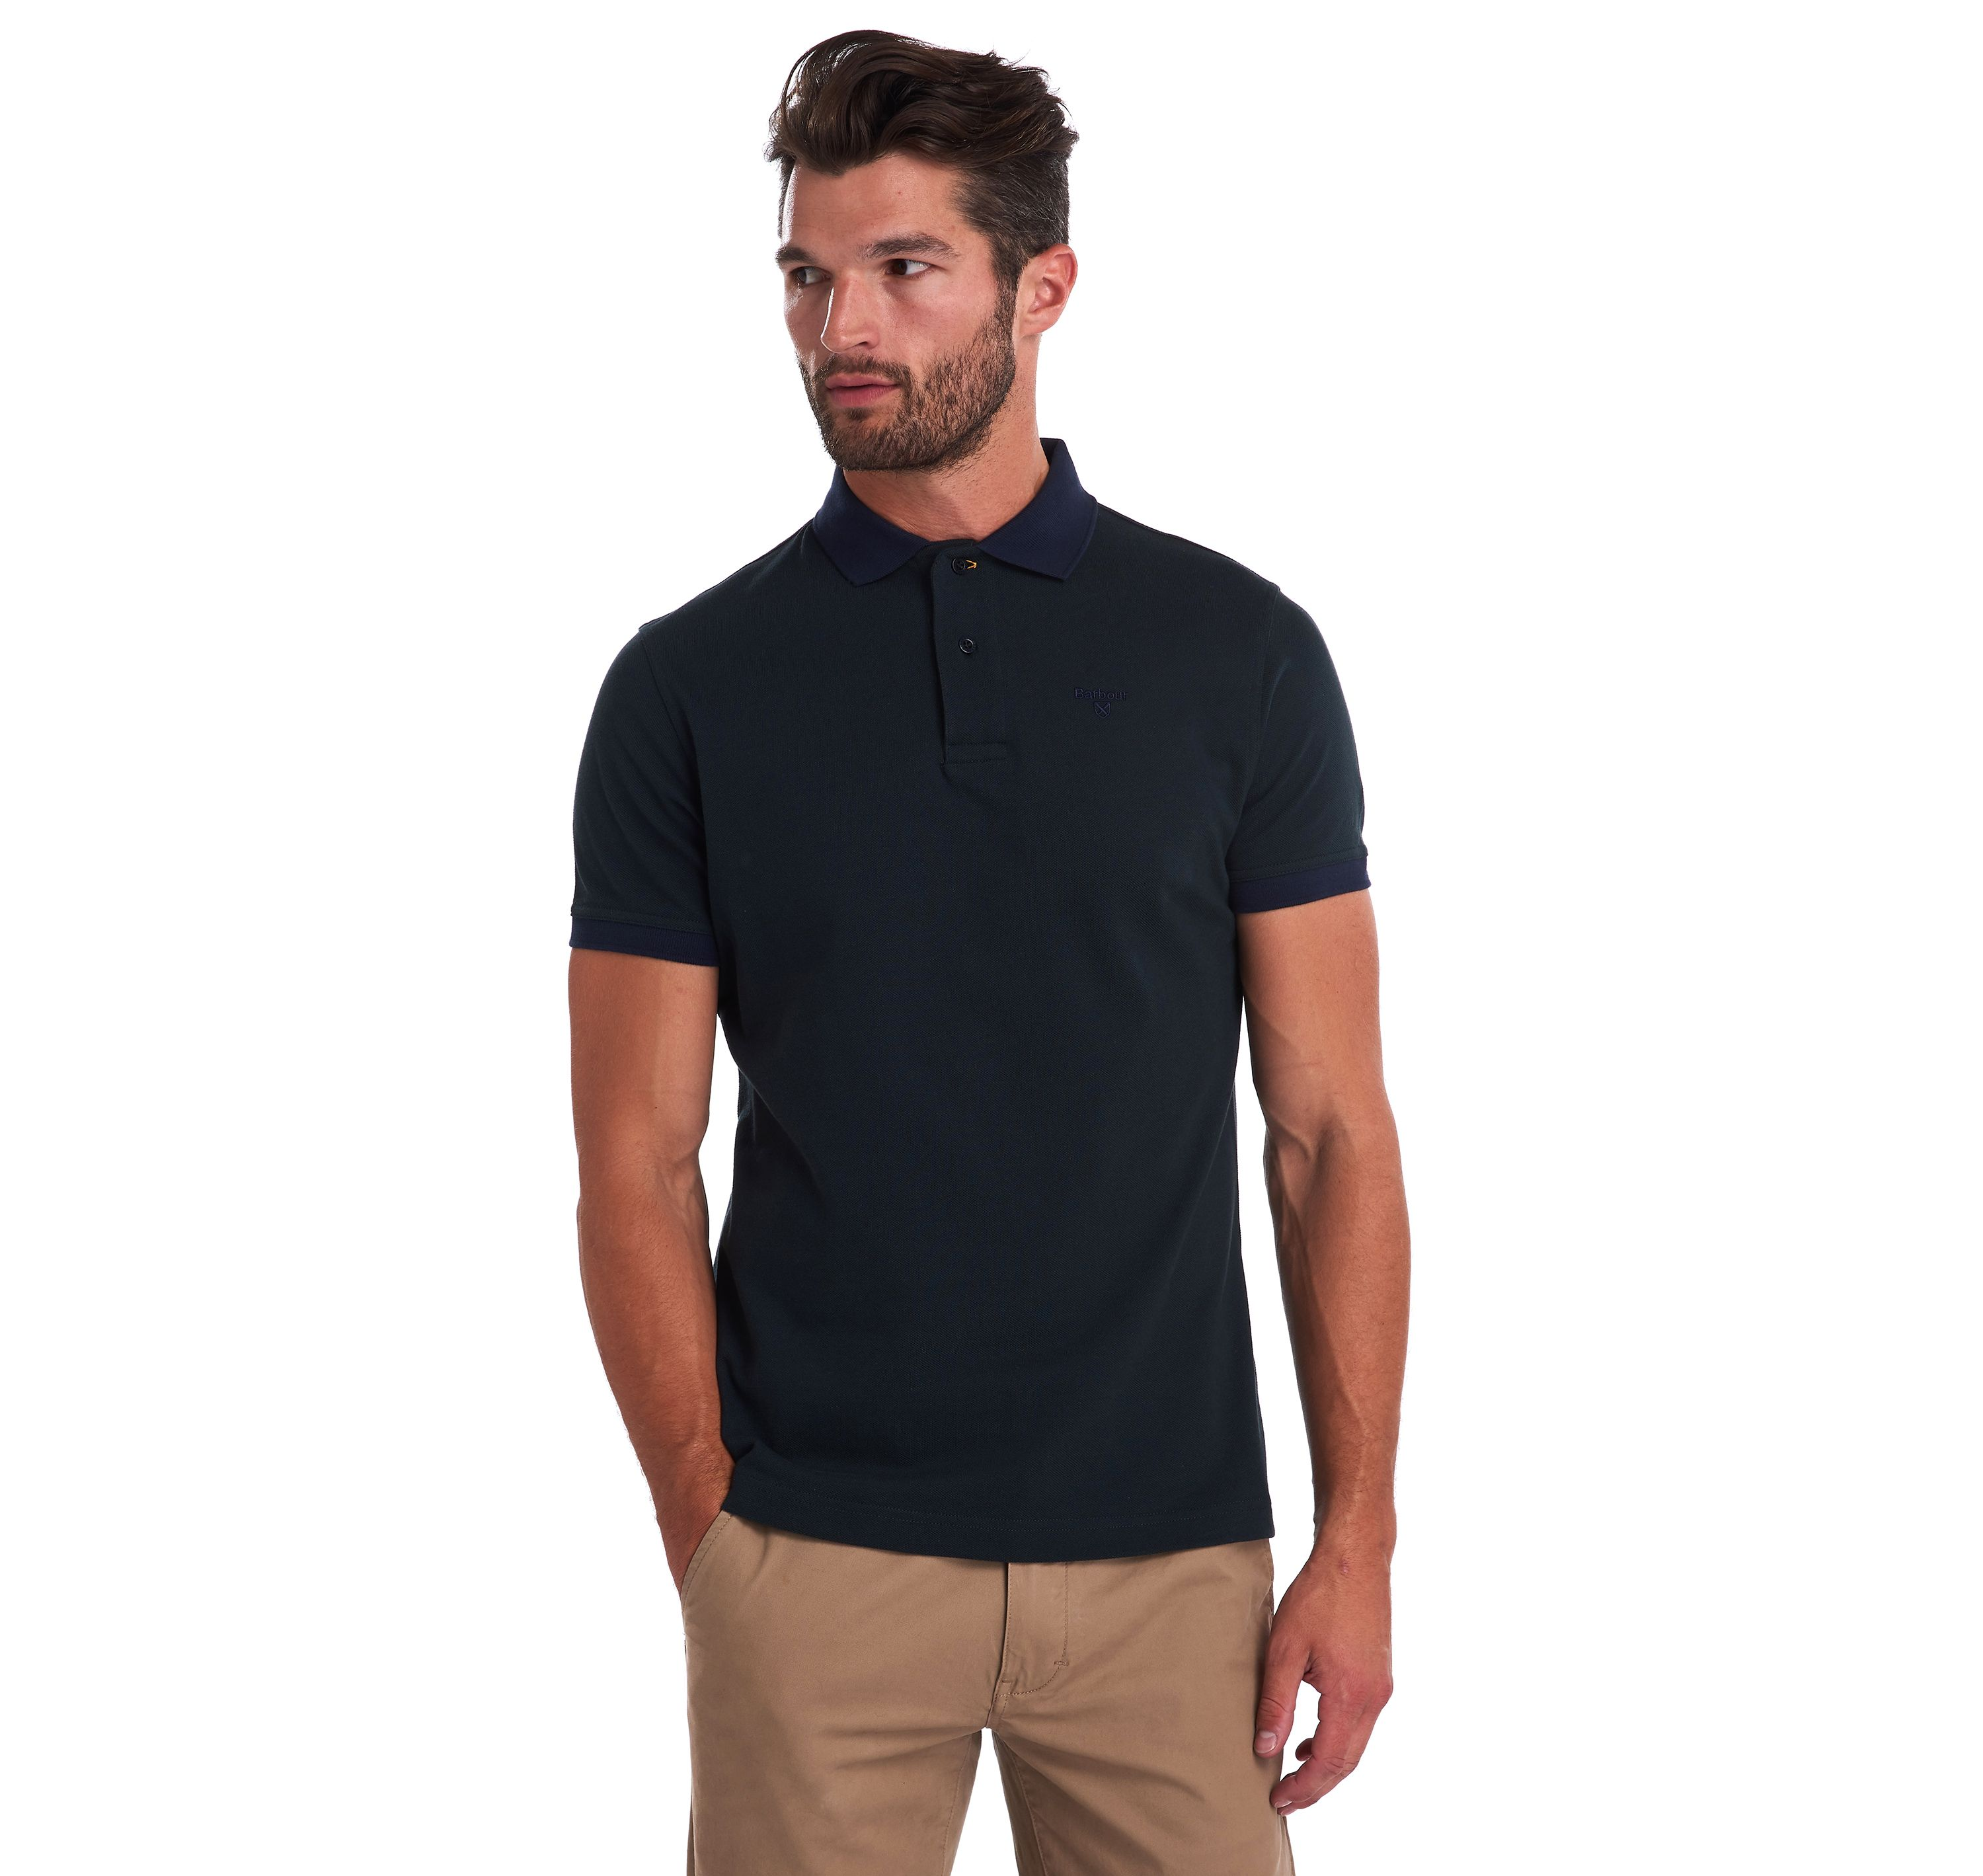 Barbour Sports Mix Polo Shirt